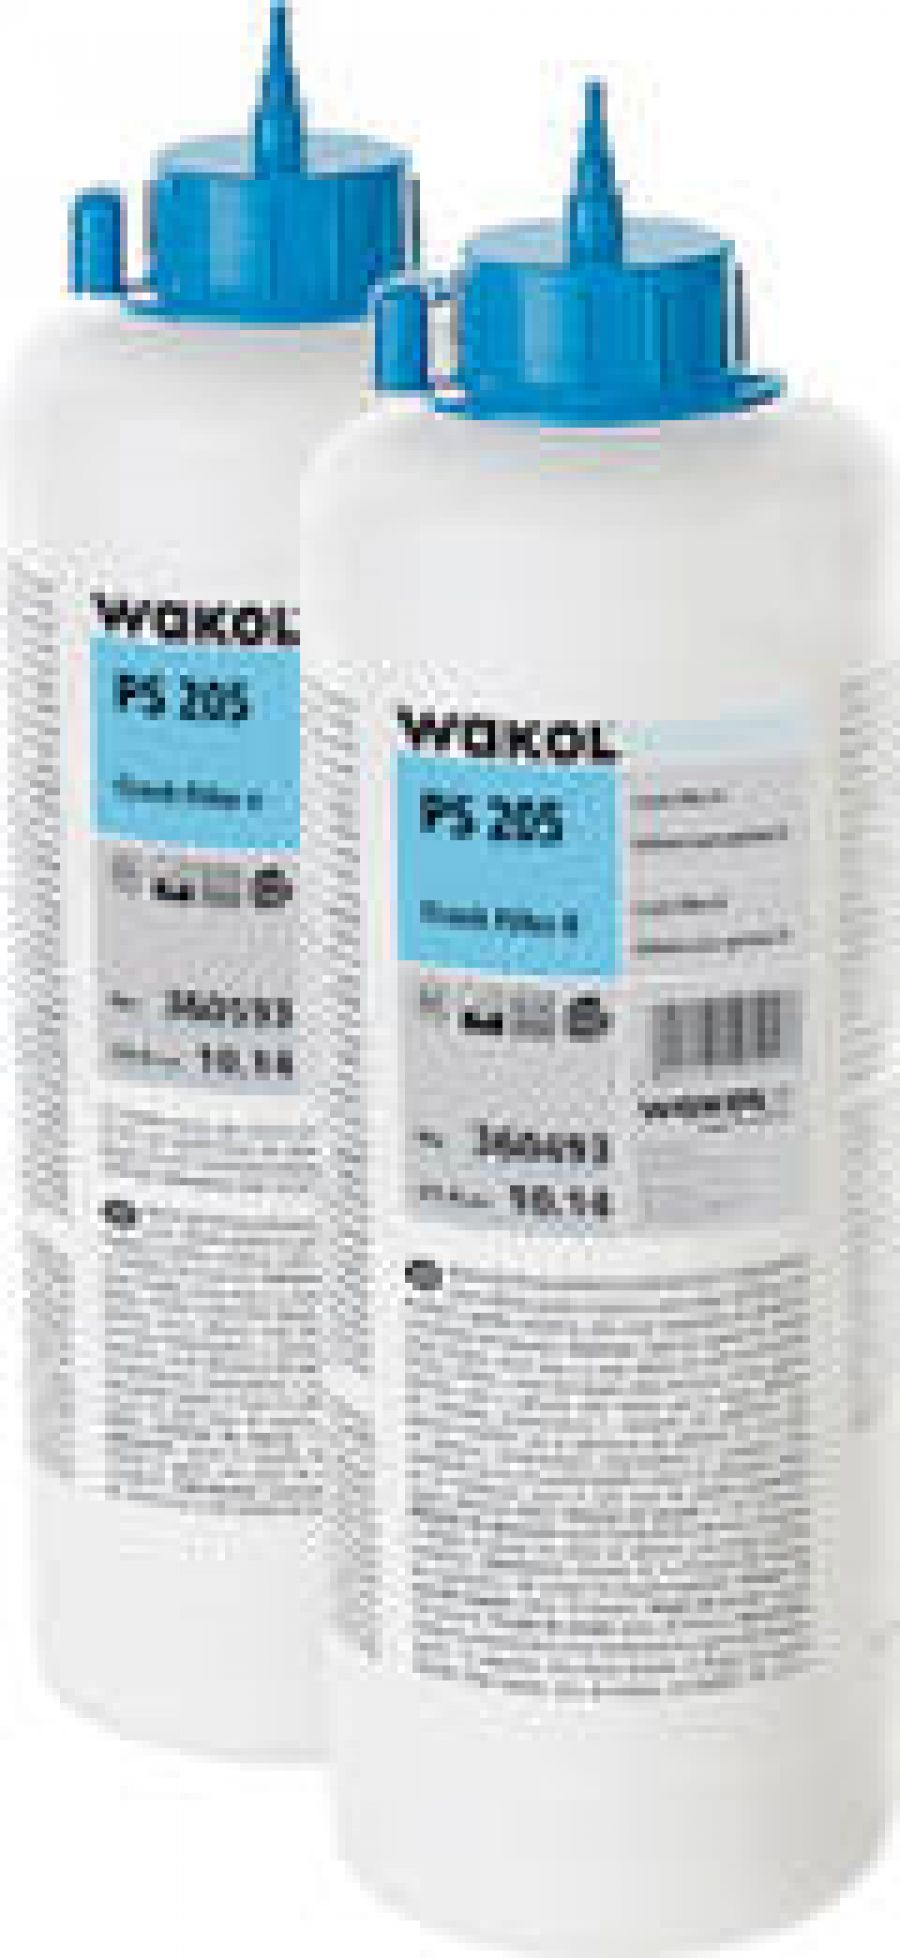 WAKOL PS 205 Hollow spot repair/starter row adhesive